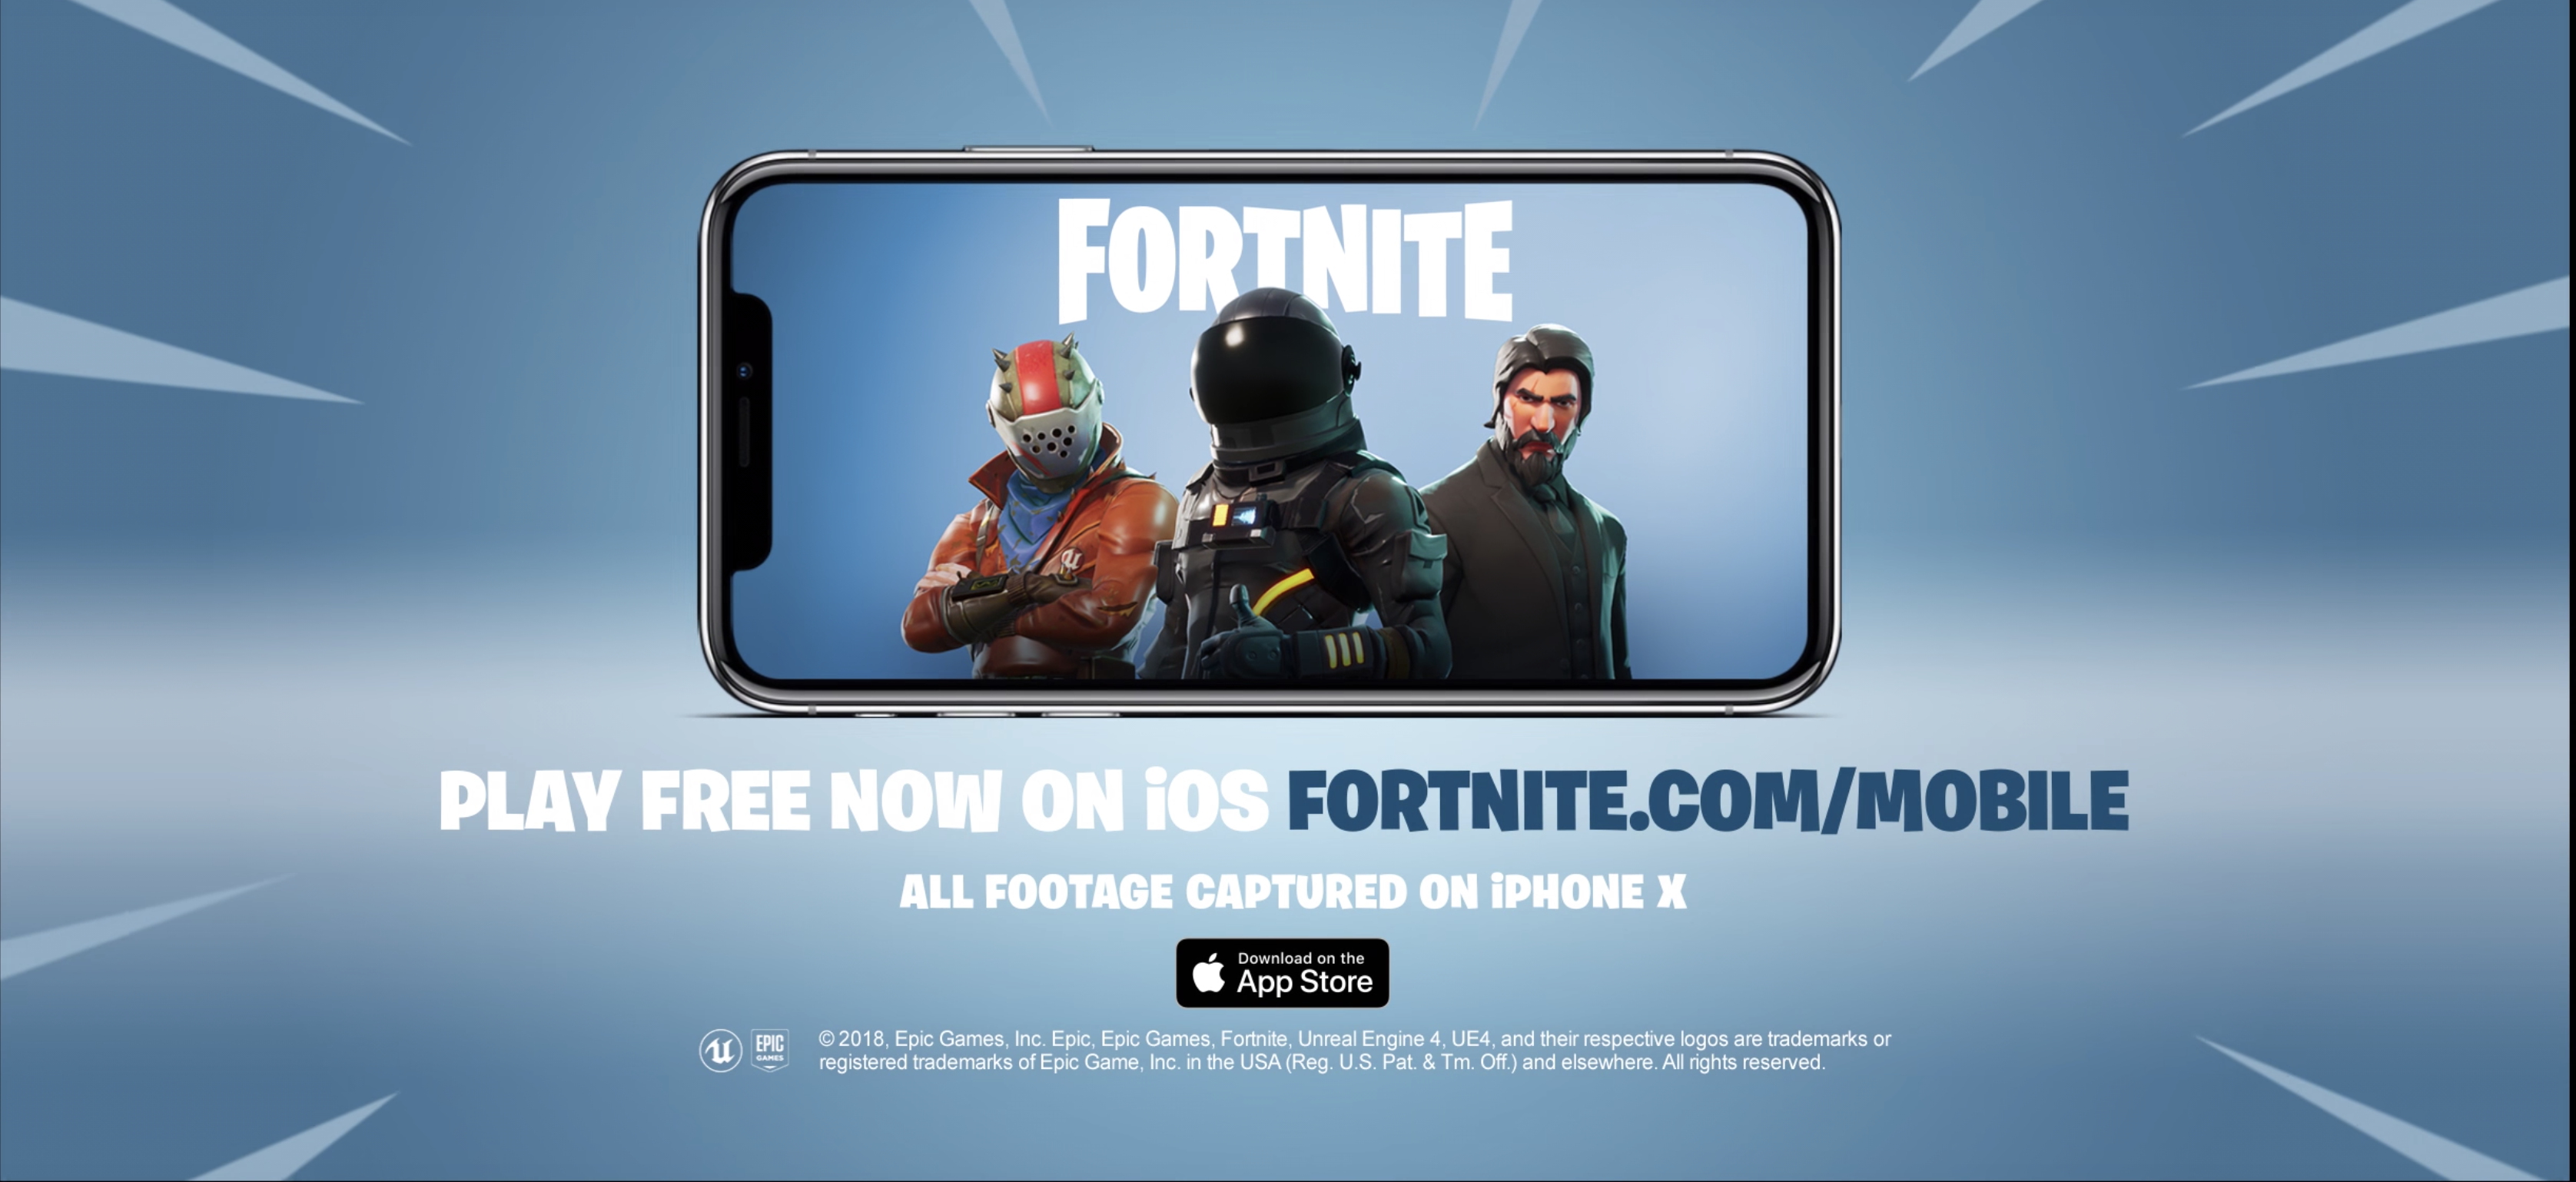 is fortnite on ios